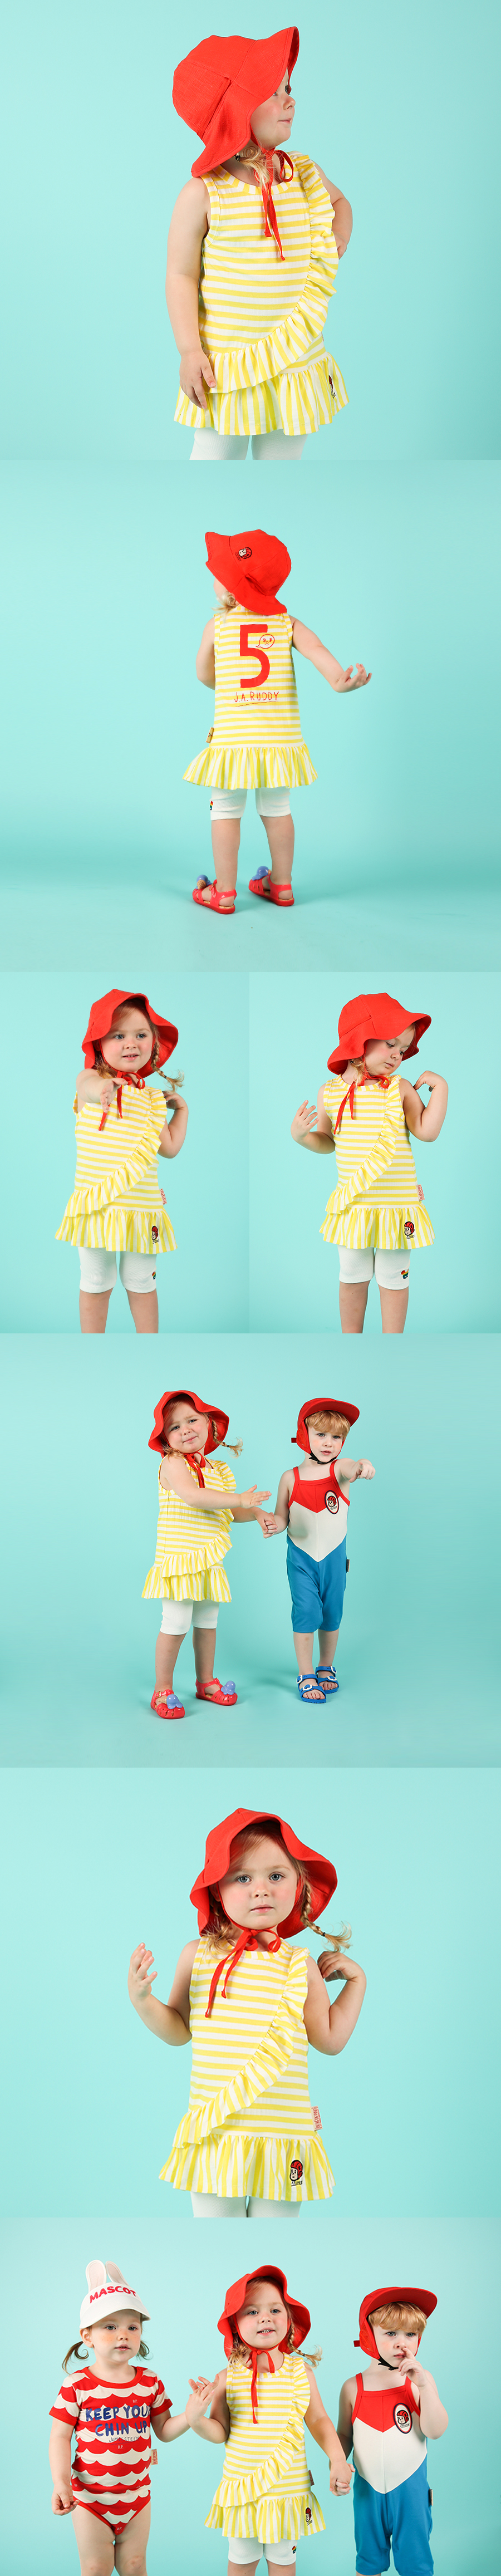 Number 5 baby unbalance ruffle dress 상세 이미지